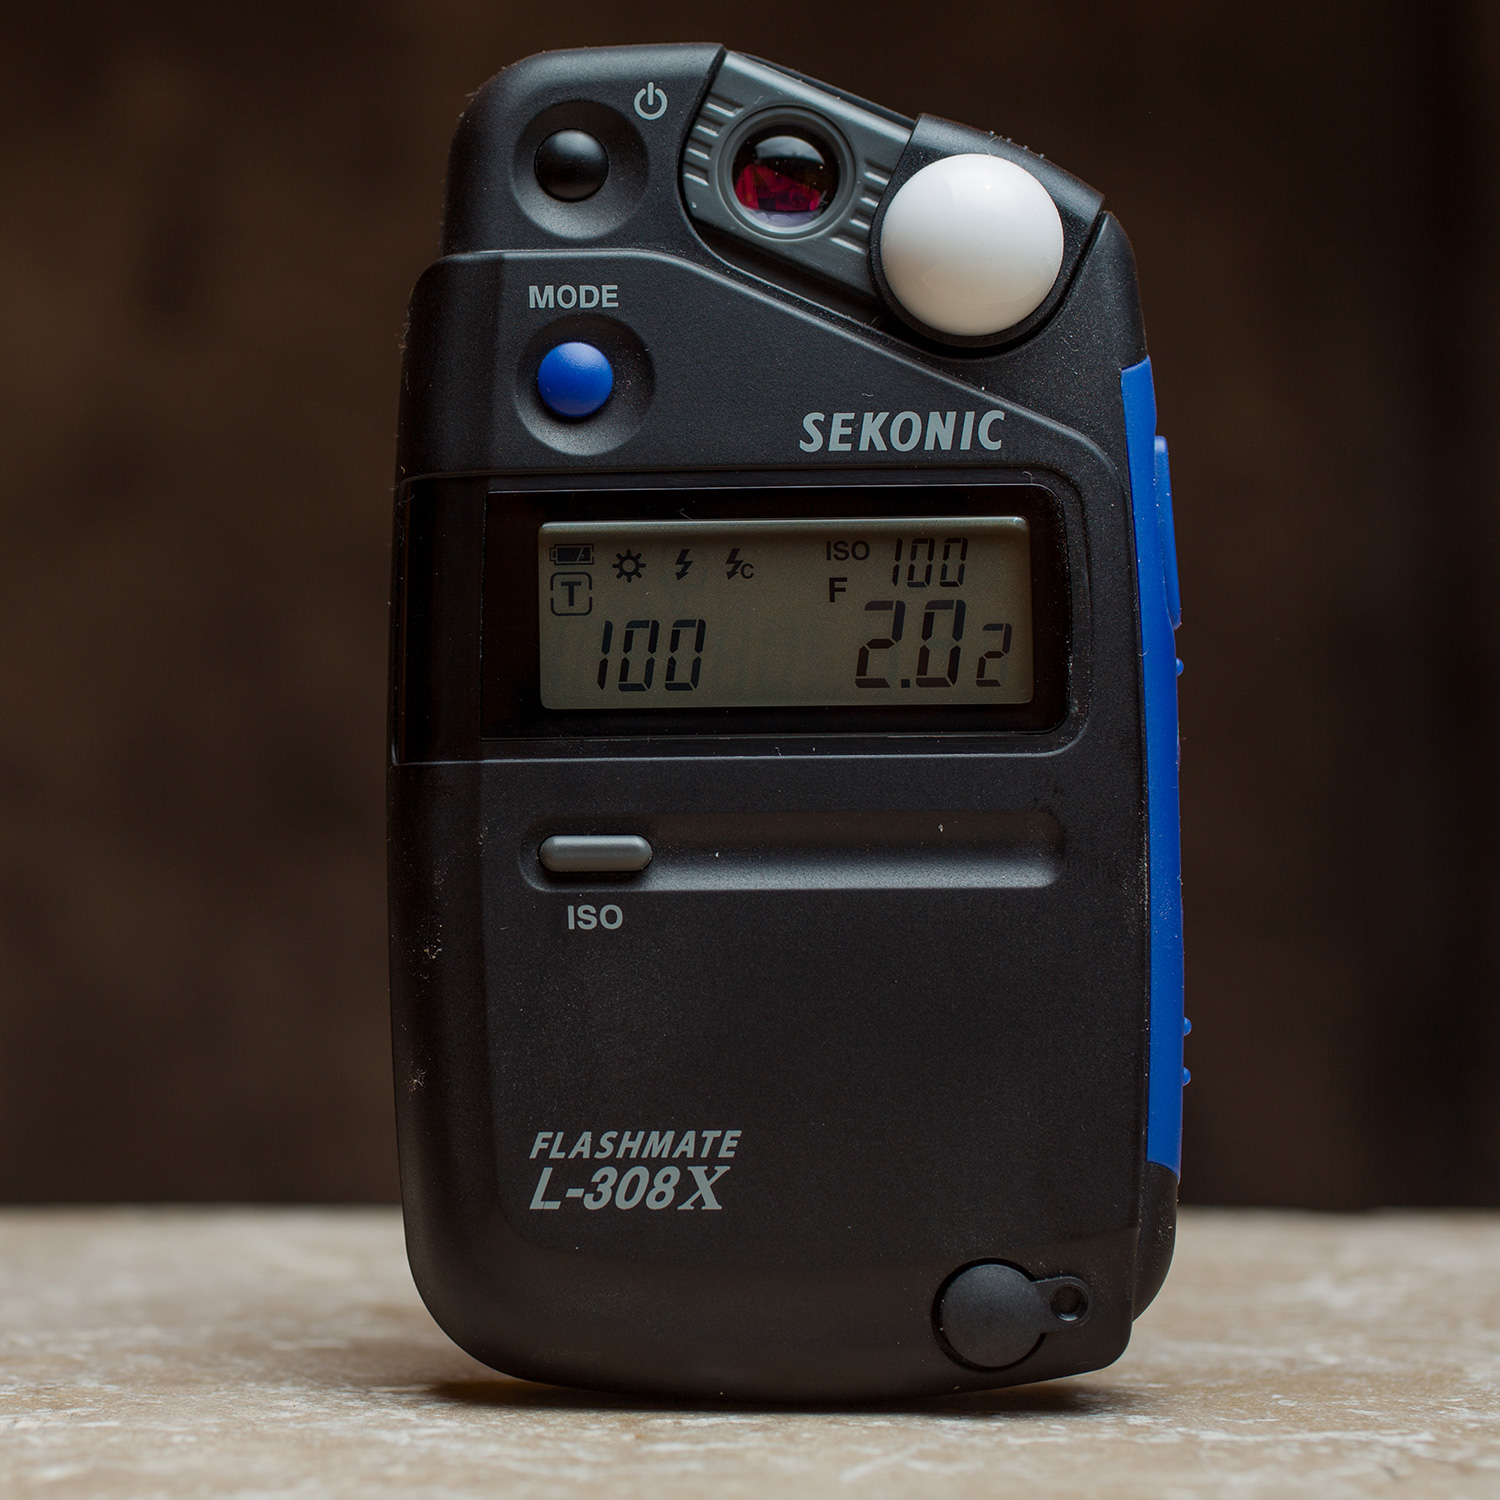 sekonic light meter - Why I've Become a Light Meter Convert